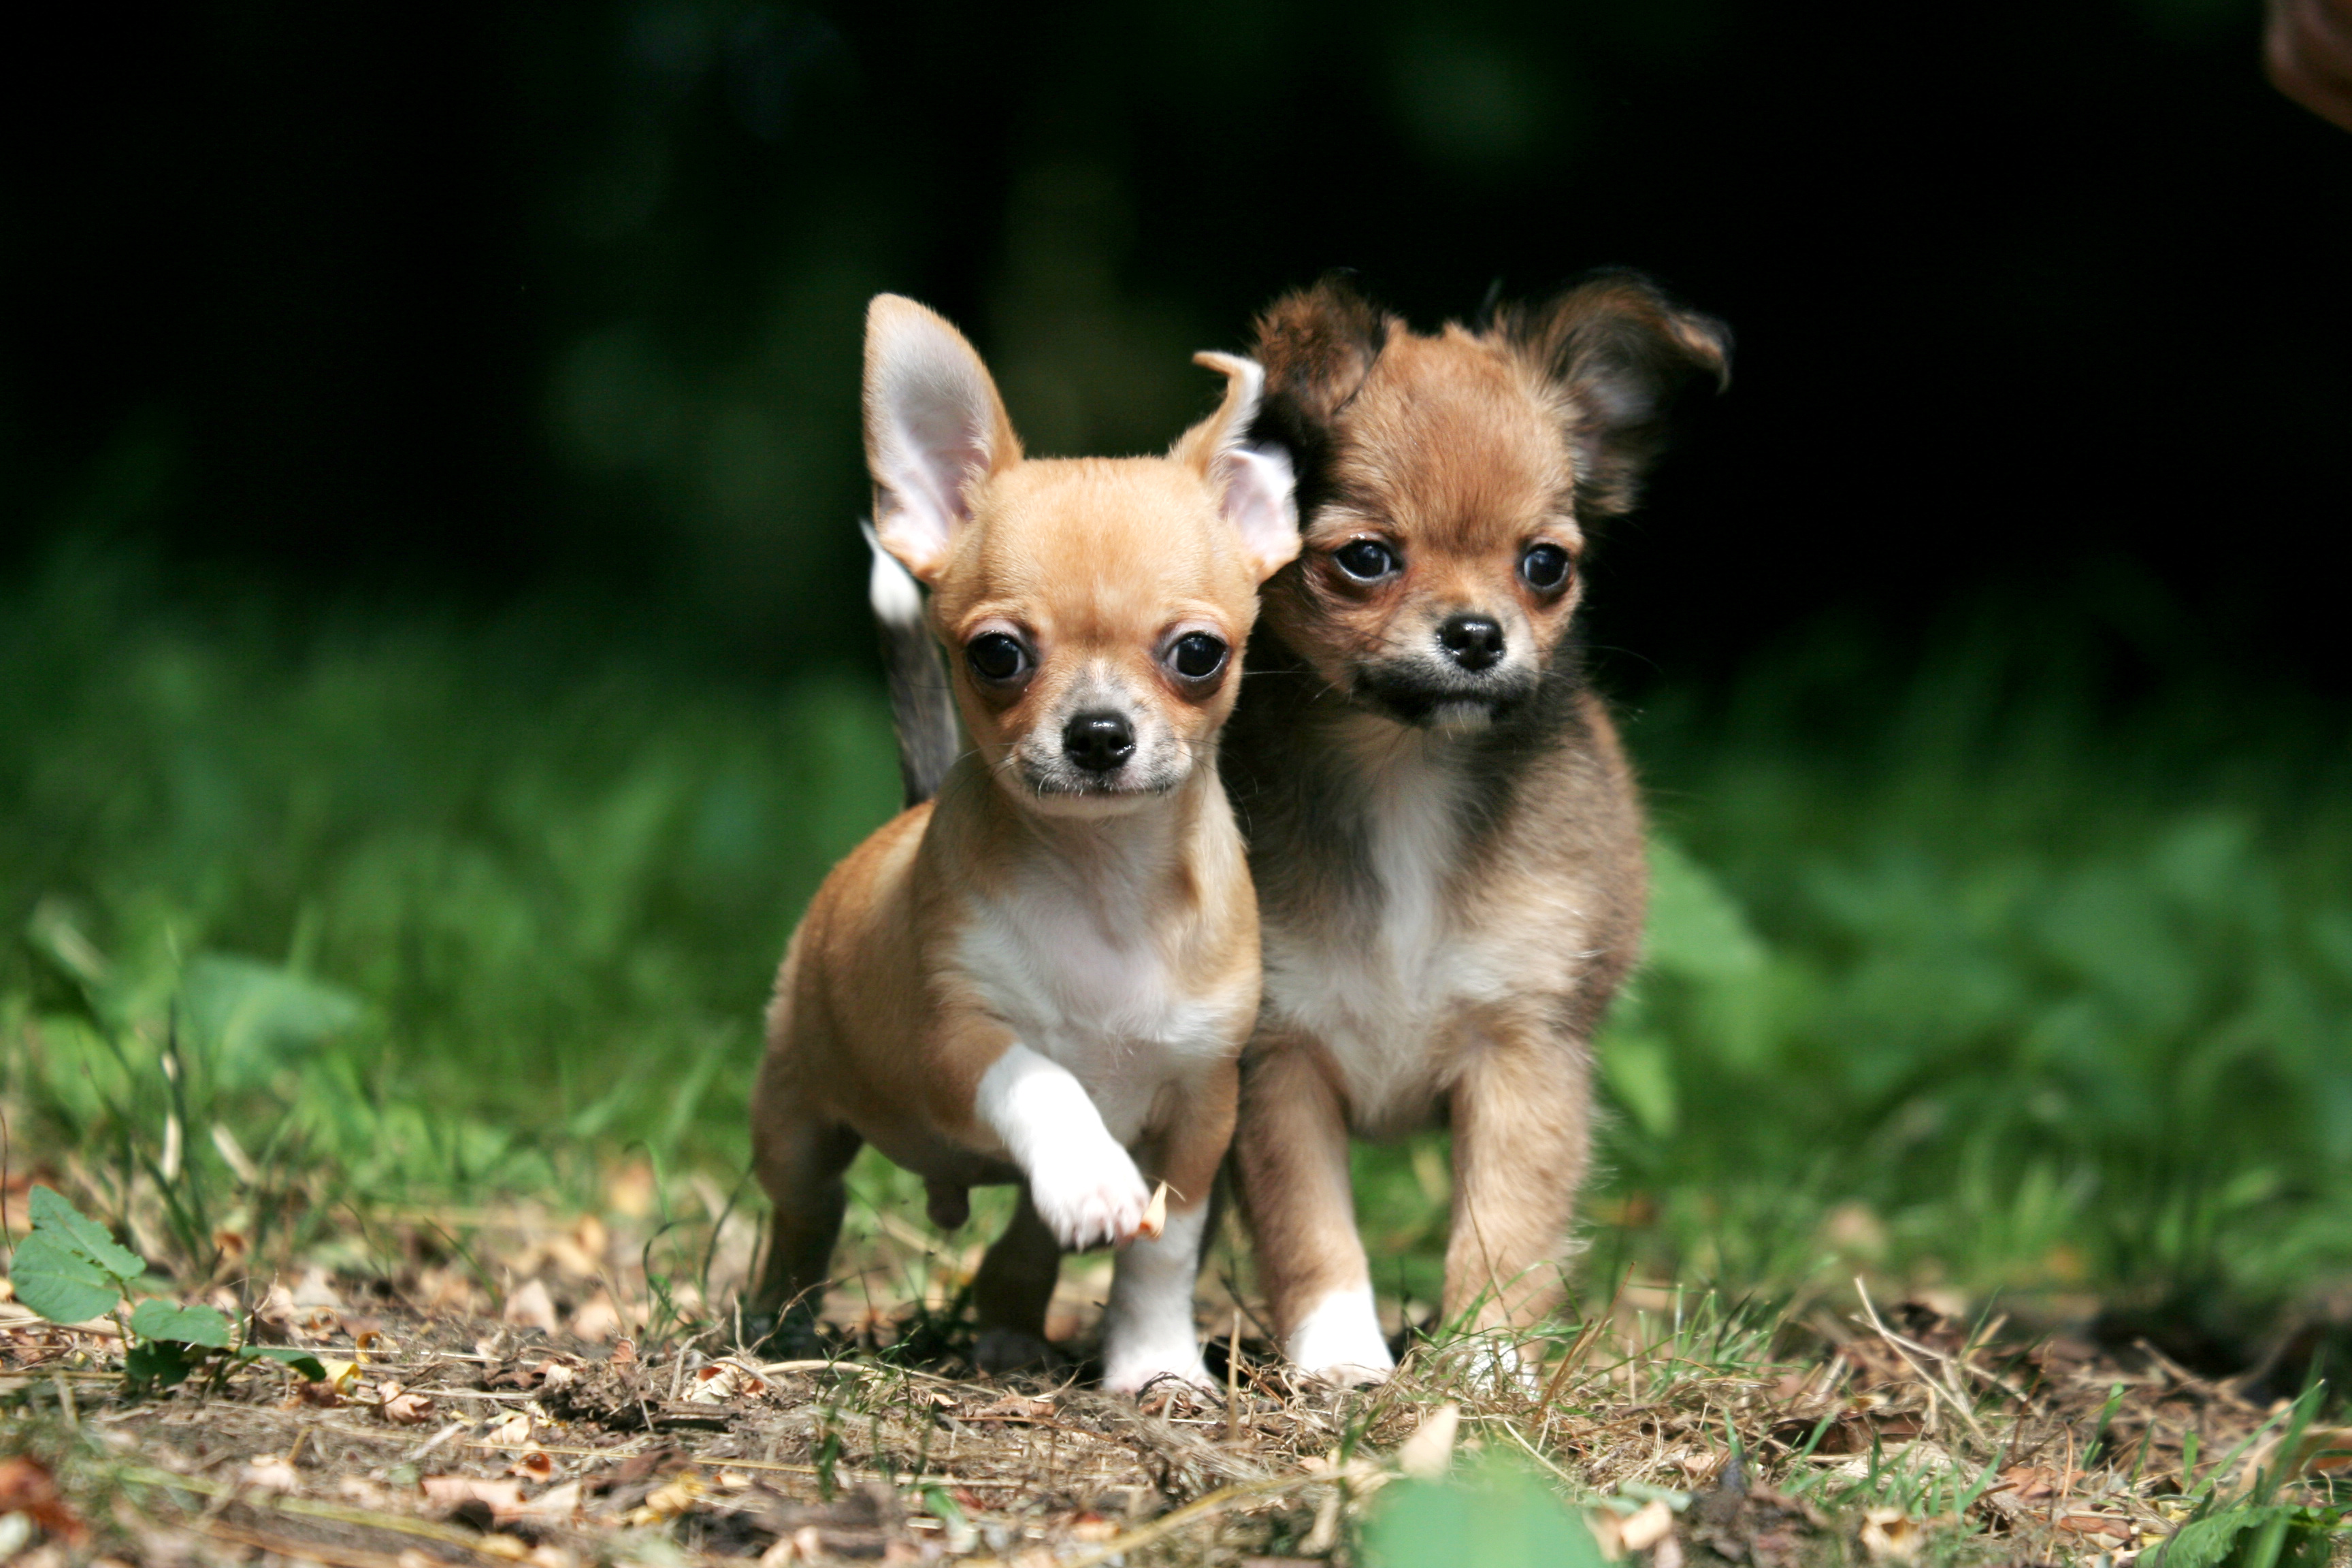 One Of The Smallest Dog In The World The Chihuahua